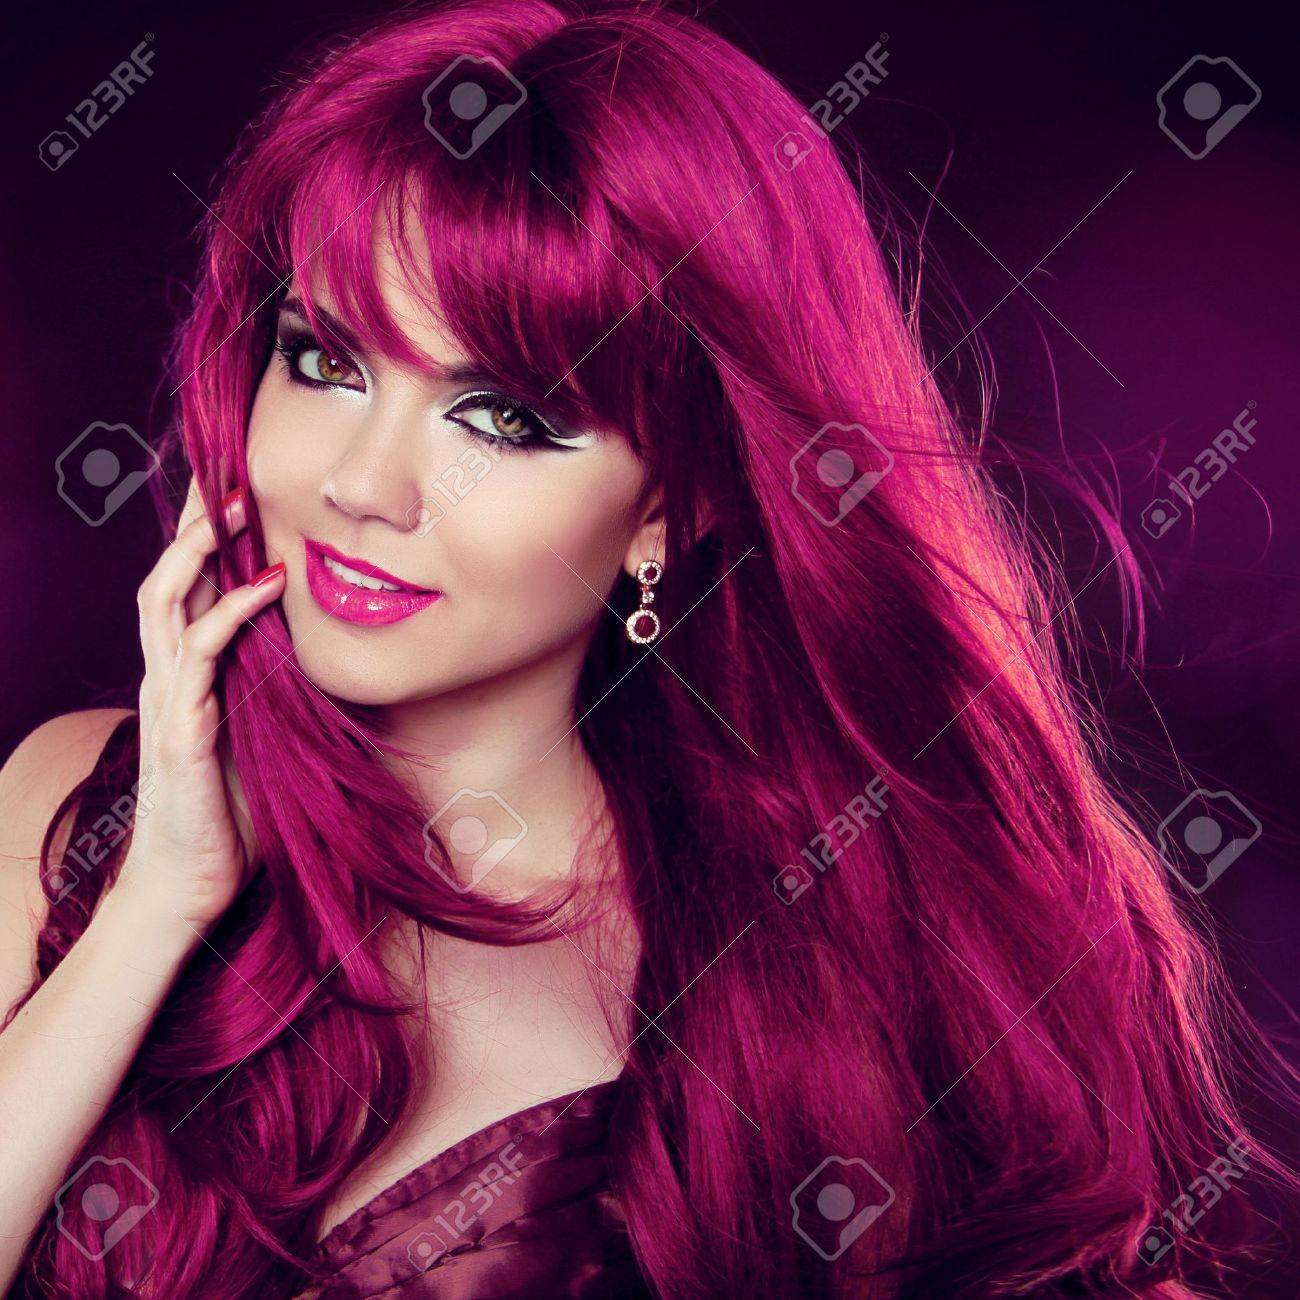 Fashion Girl Portrait with long Curly Hair Stock Photo - 20499573